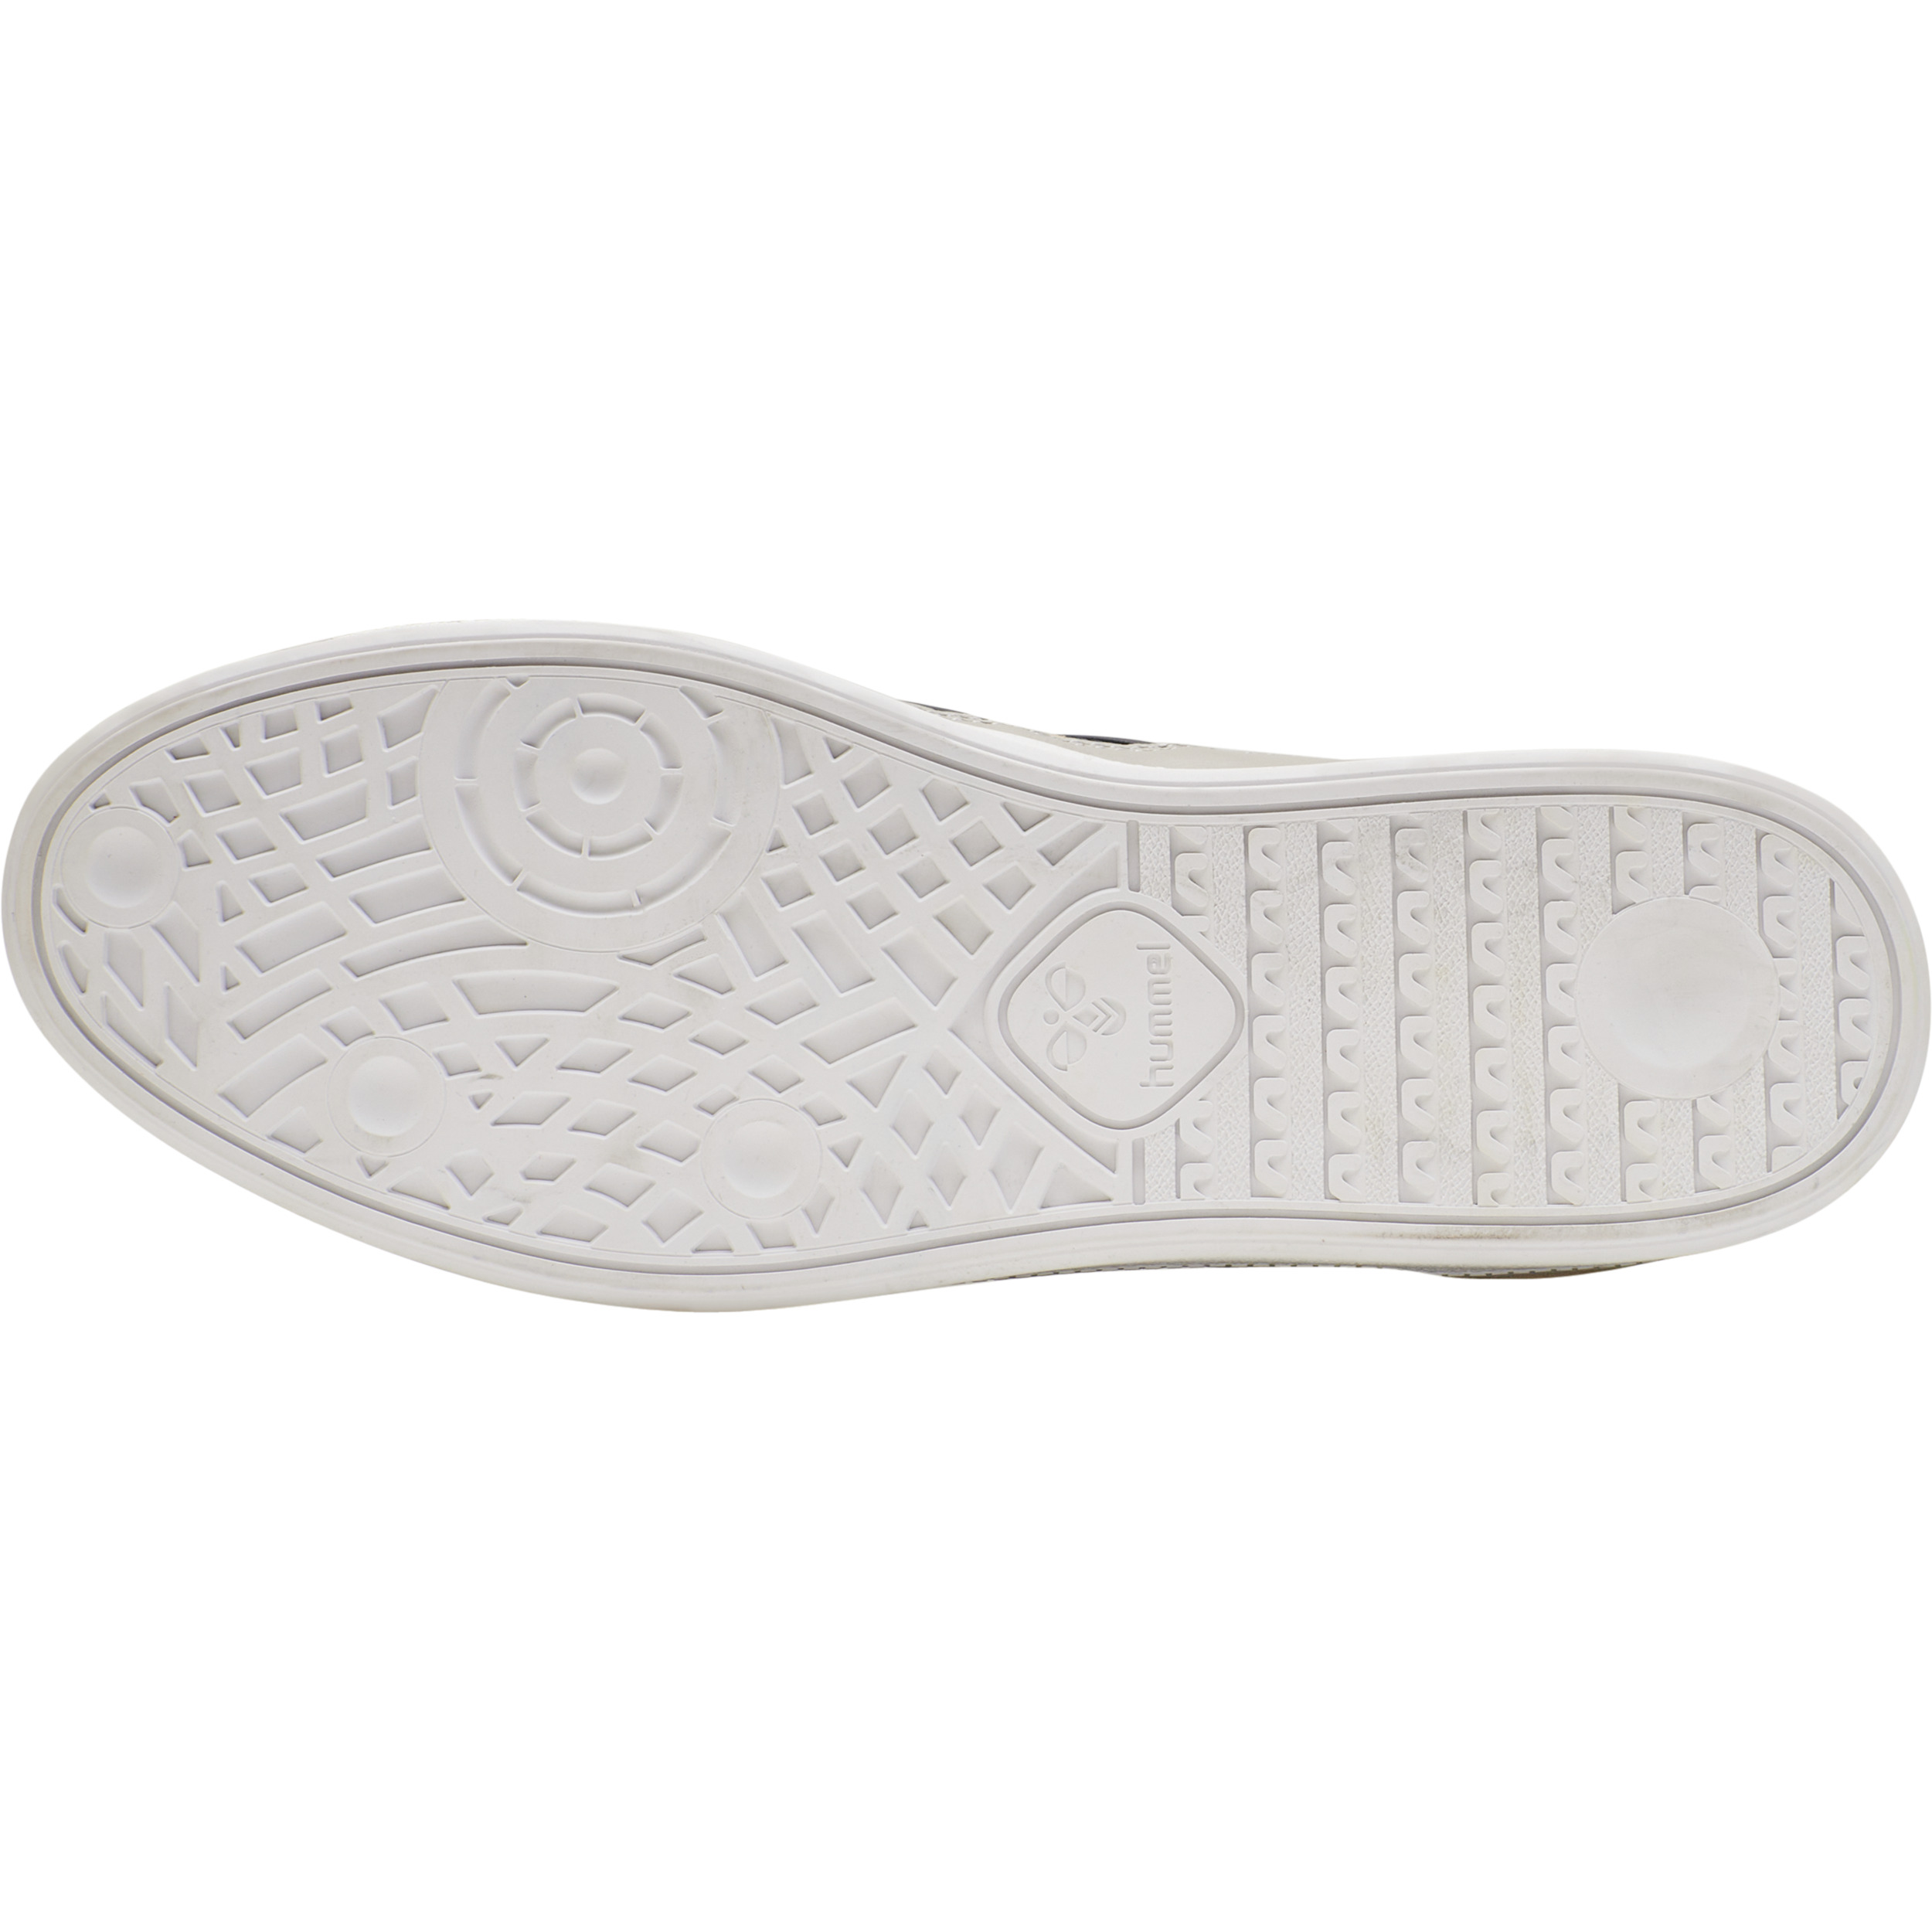 Hummel HB Team Suede sneakers, whisper white, 45